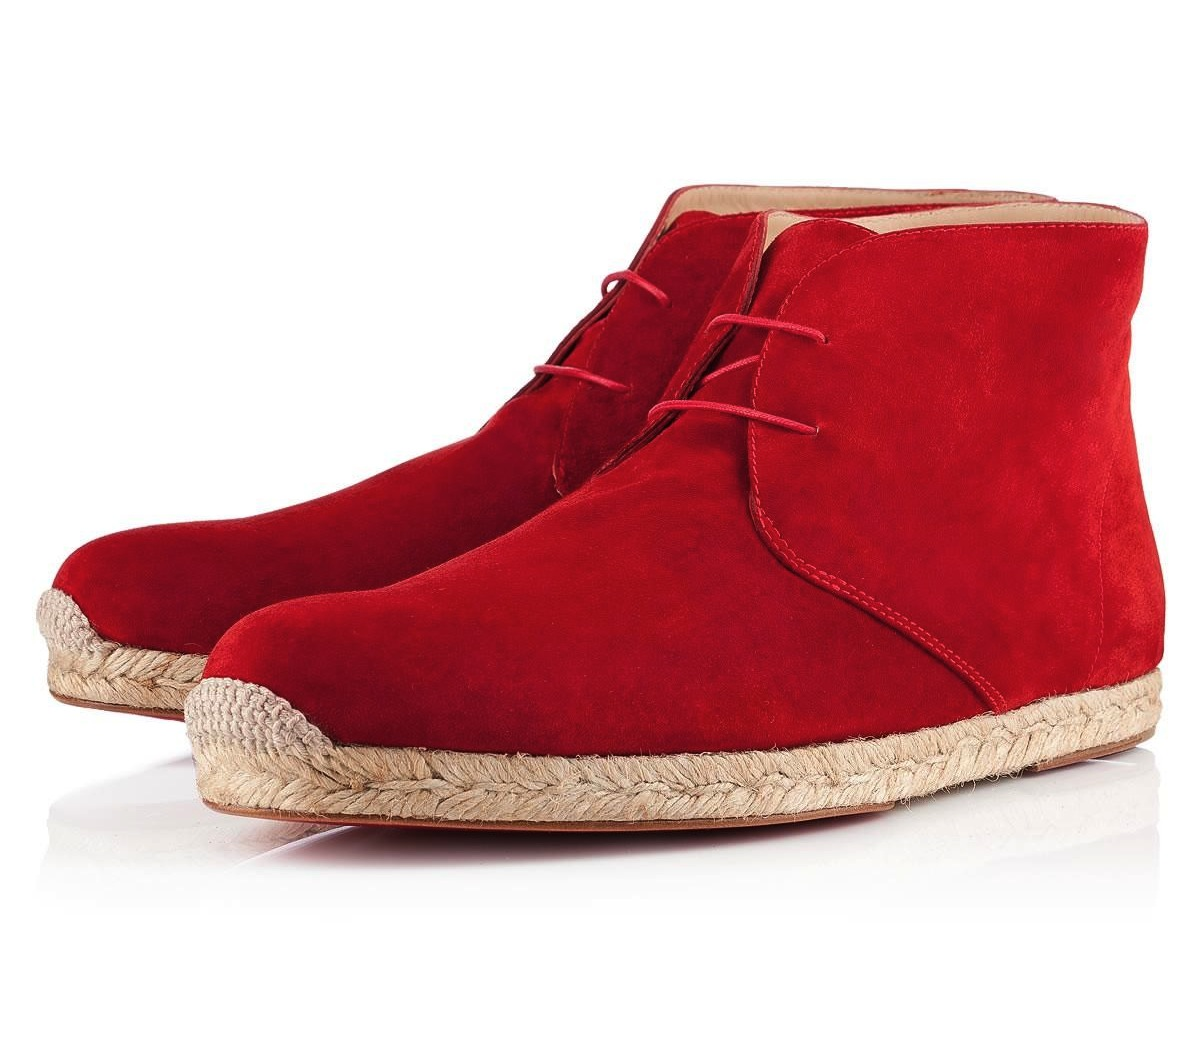 00O00 London Menswear Blog Christian Louboutin New Yorker Festival 2012 Cadaques Espadrilles suede boots